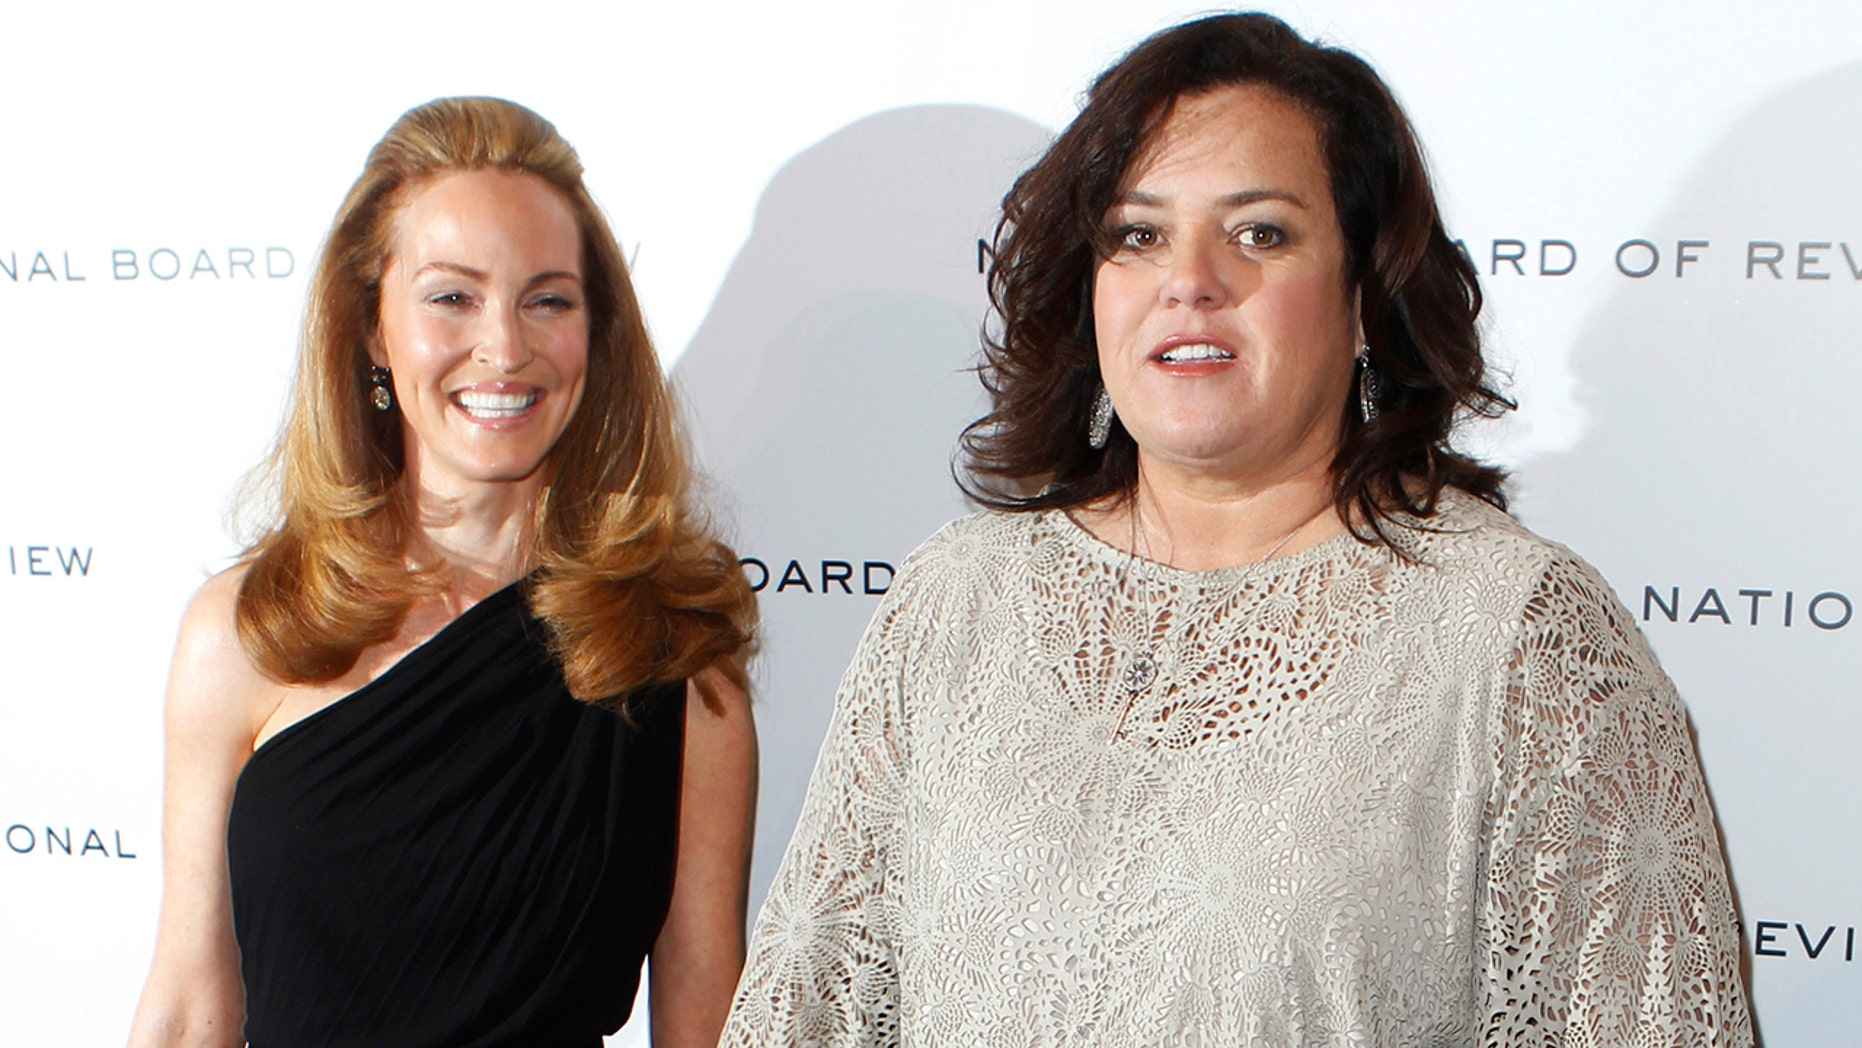 Actress Rosie O'Donnell (R) arrives with Michelle Rounds to attend the National Board of Review Awards Gala in New York, January 10, 2012. REUTERS/Lucas Jackson (UNITED STATES - Tags: ENTERTAINMENT) - GM1E81B0UW401